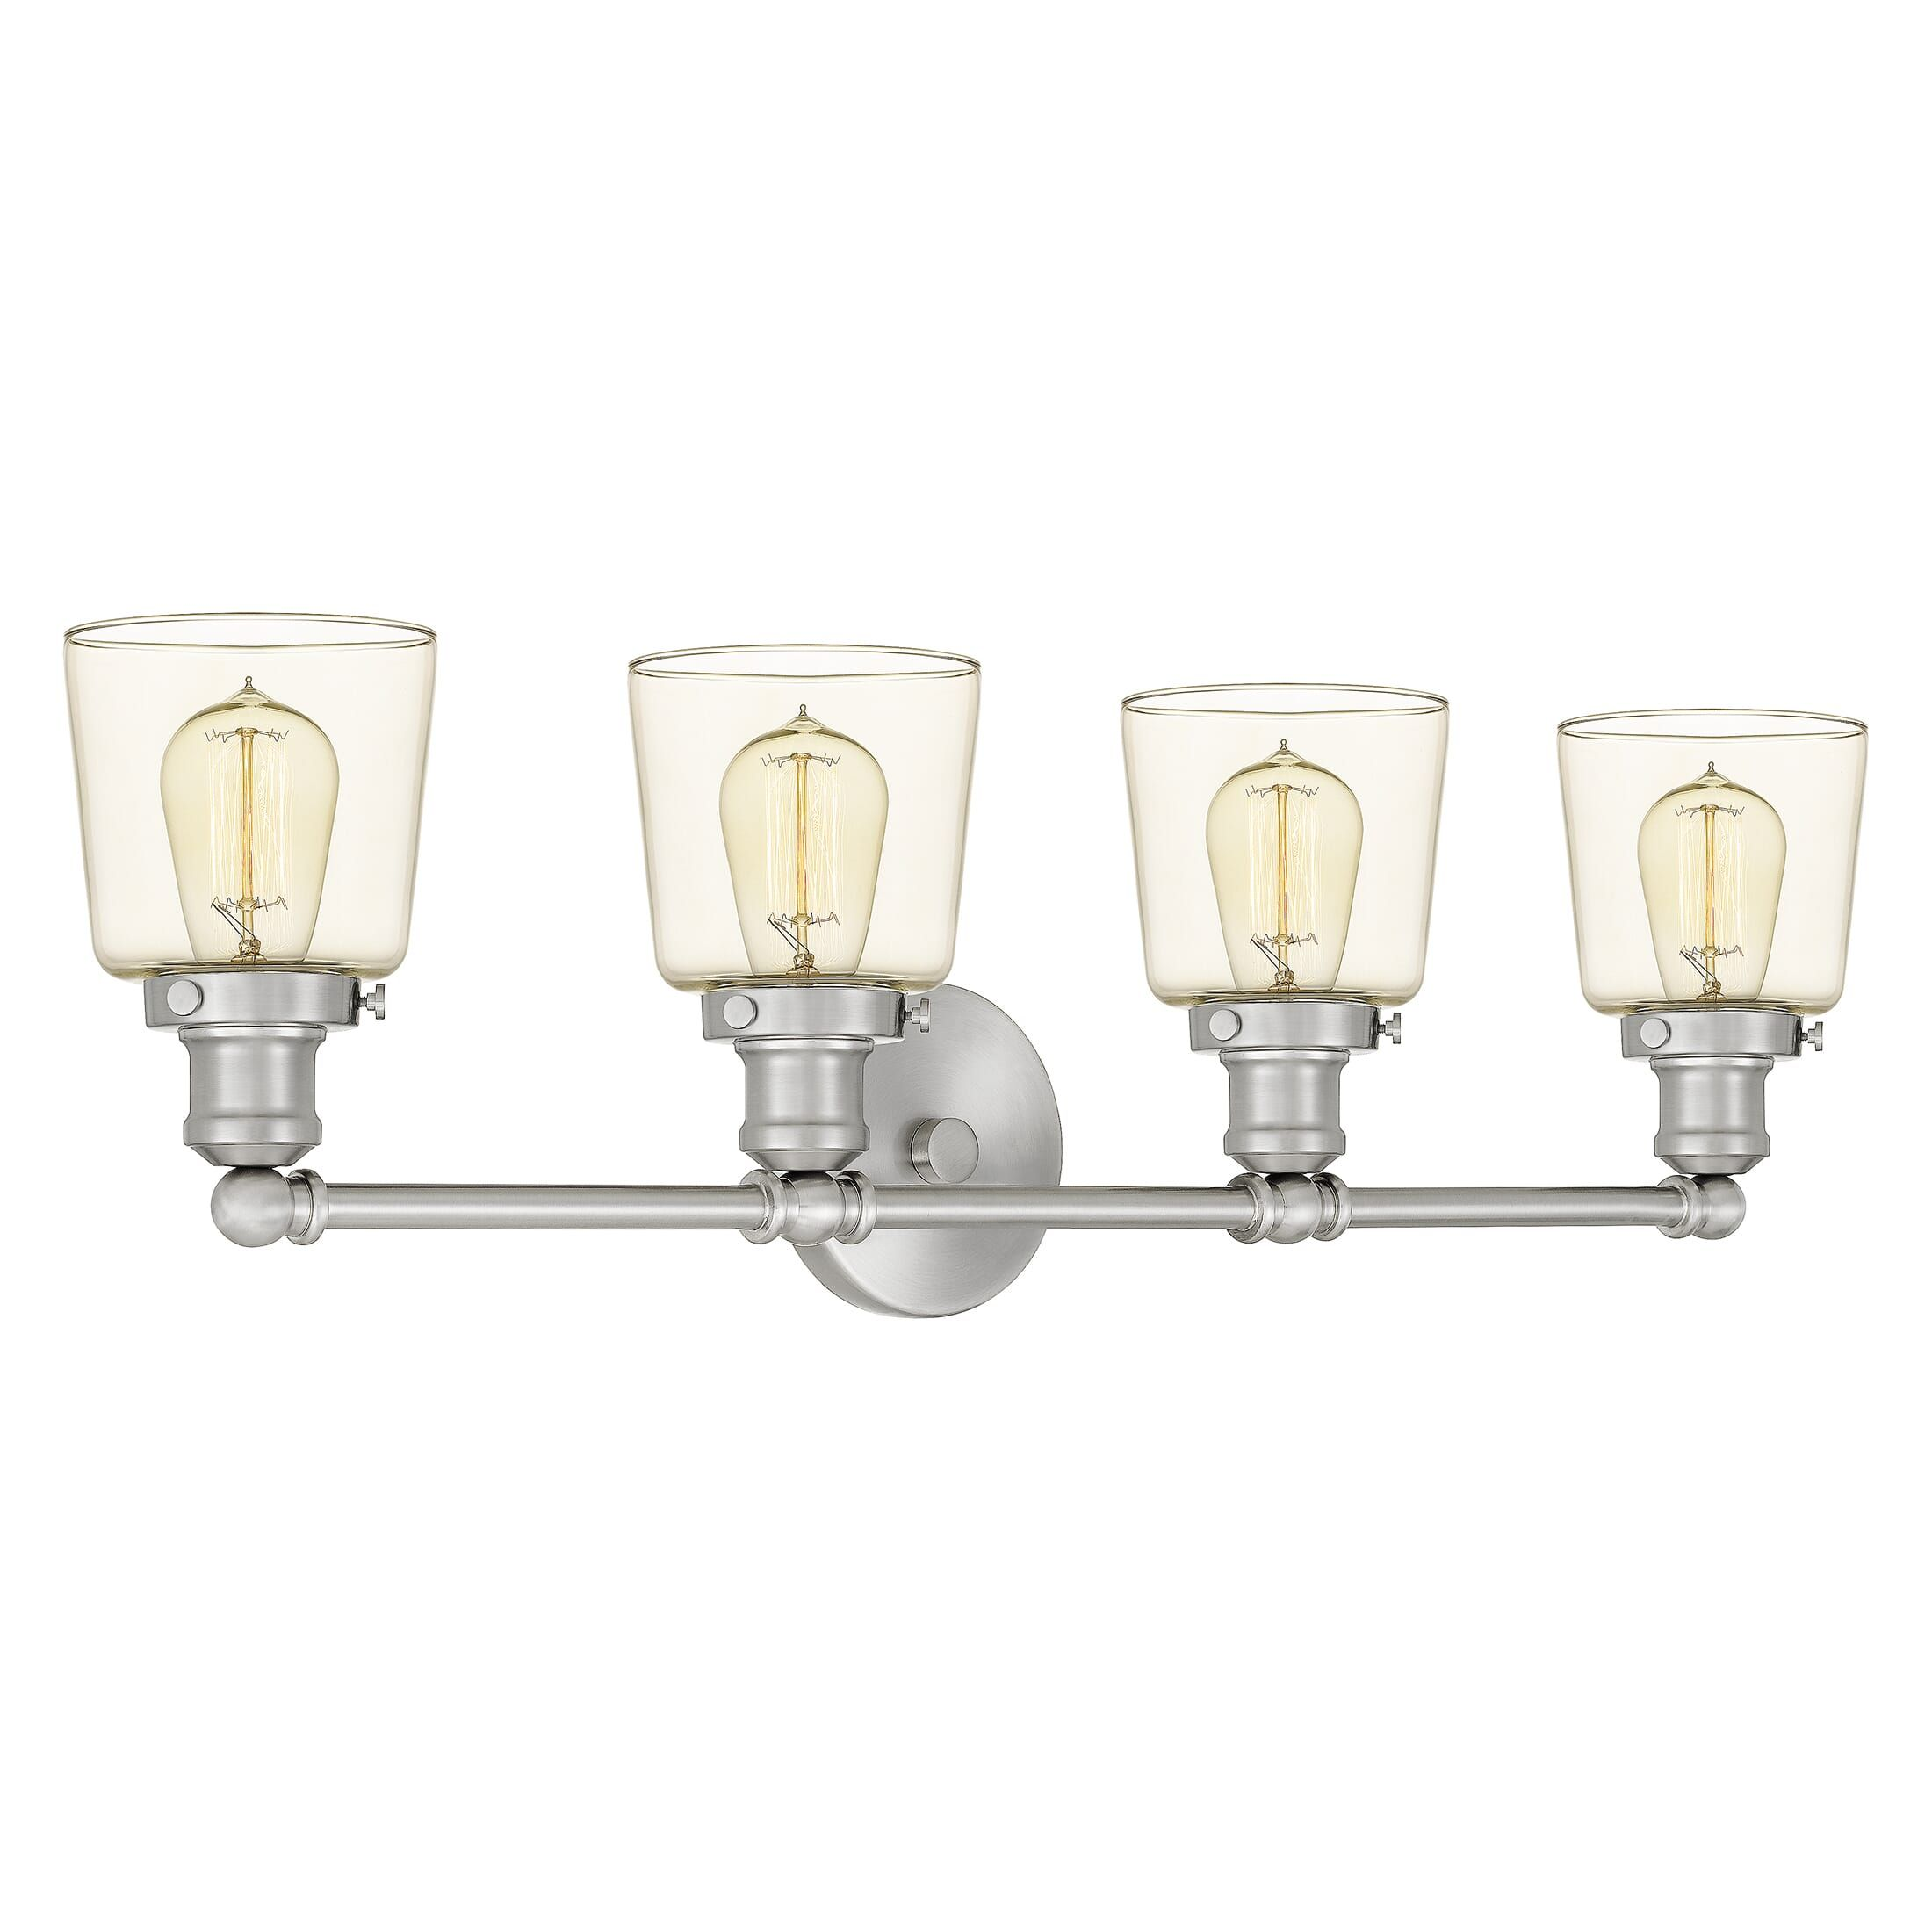 "Photo of Quoizel Union 4-Light 9 ""bathroom vanity lamp made of brushed nickel"